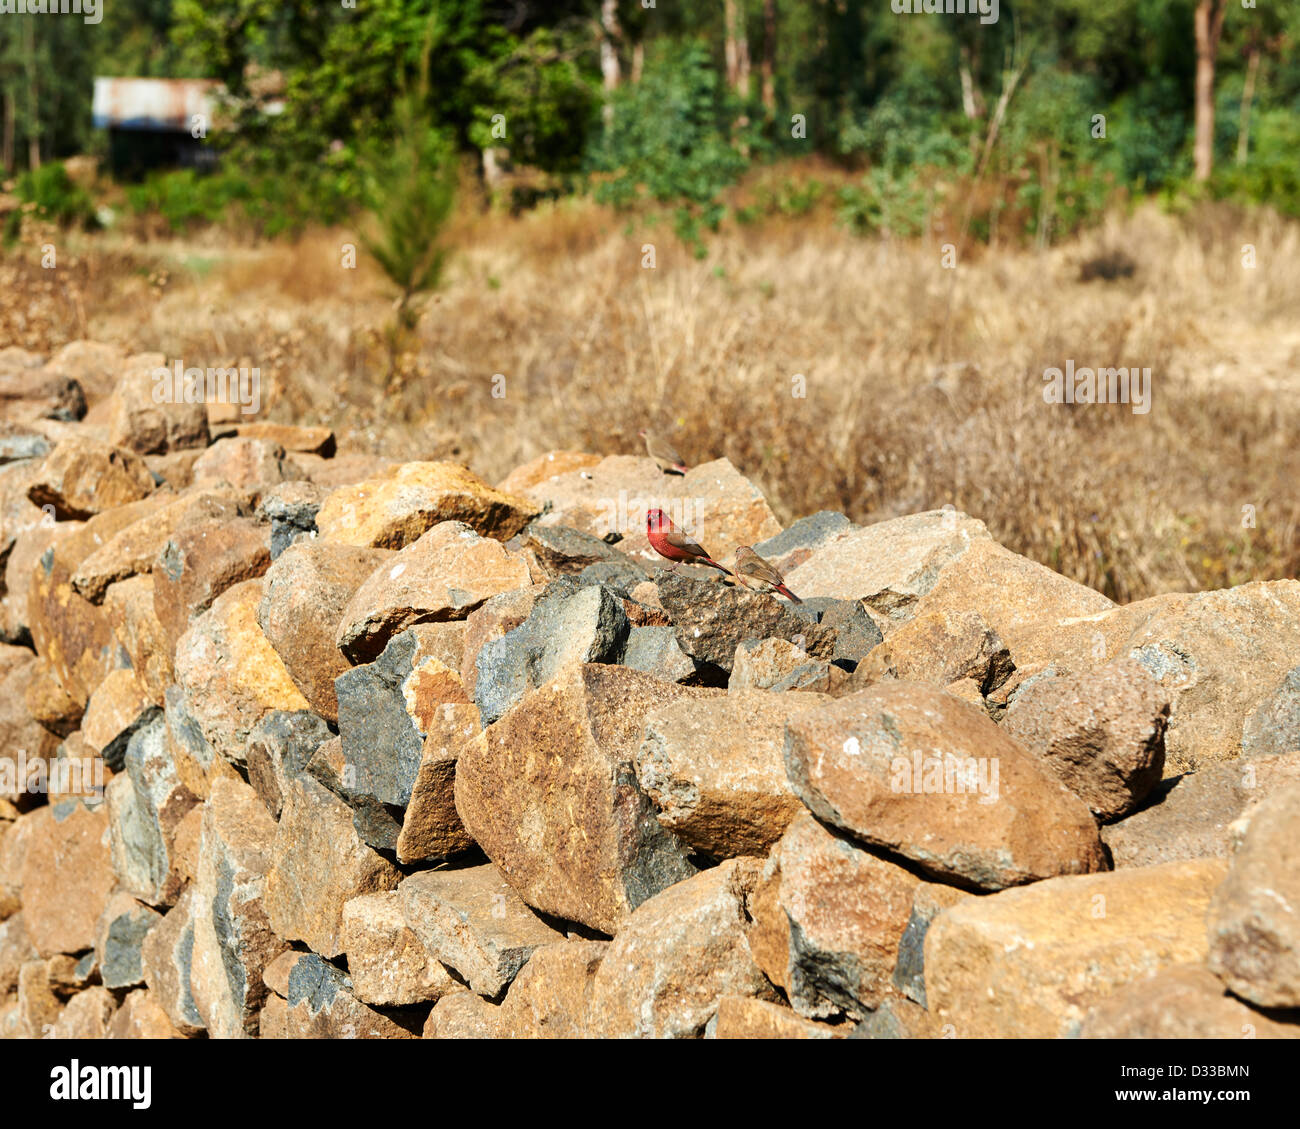 A Red-billed Firefinch perched on a stone wall in Ethiopia, Africa Stock Photo